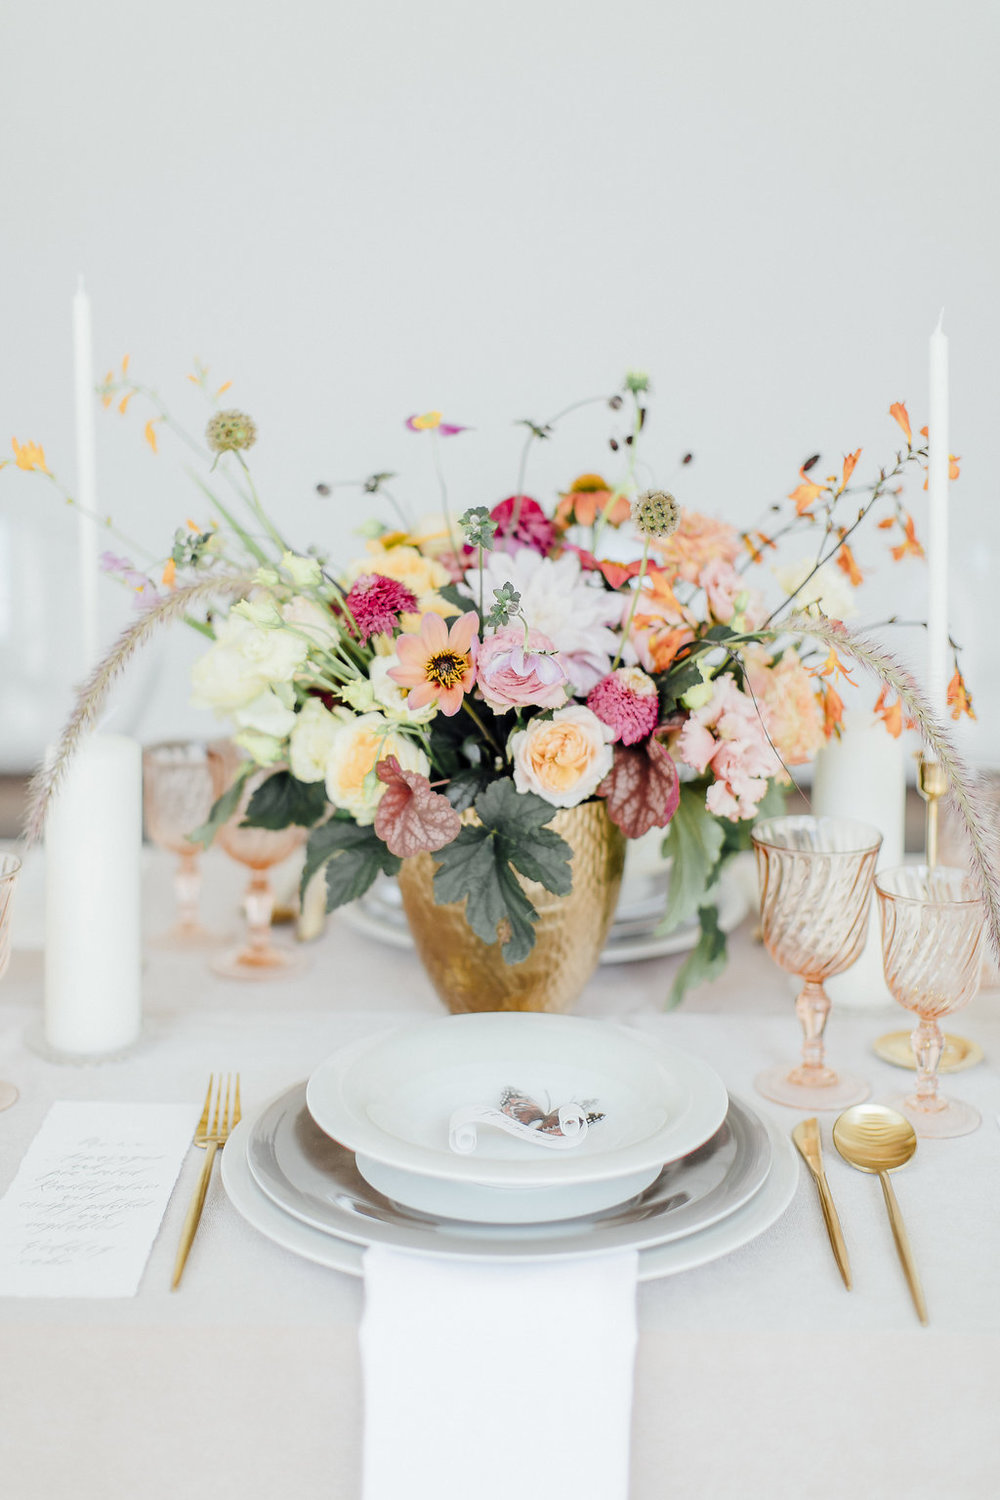 wedding centerpiece, wedding table, wedding details, dinnerware, tableware